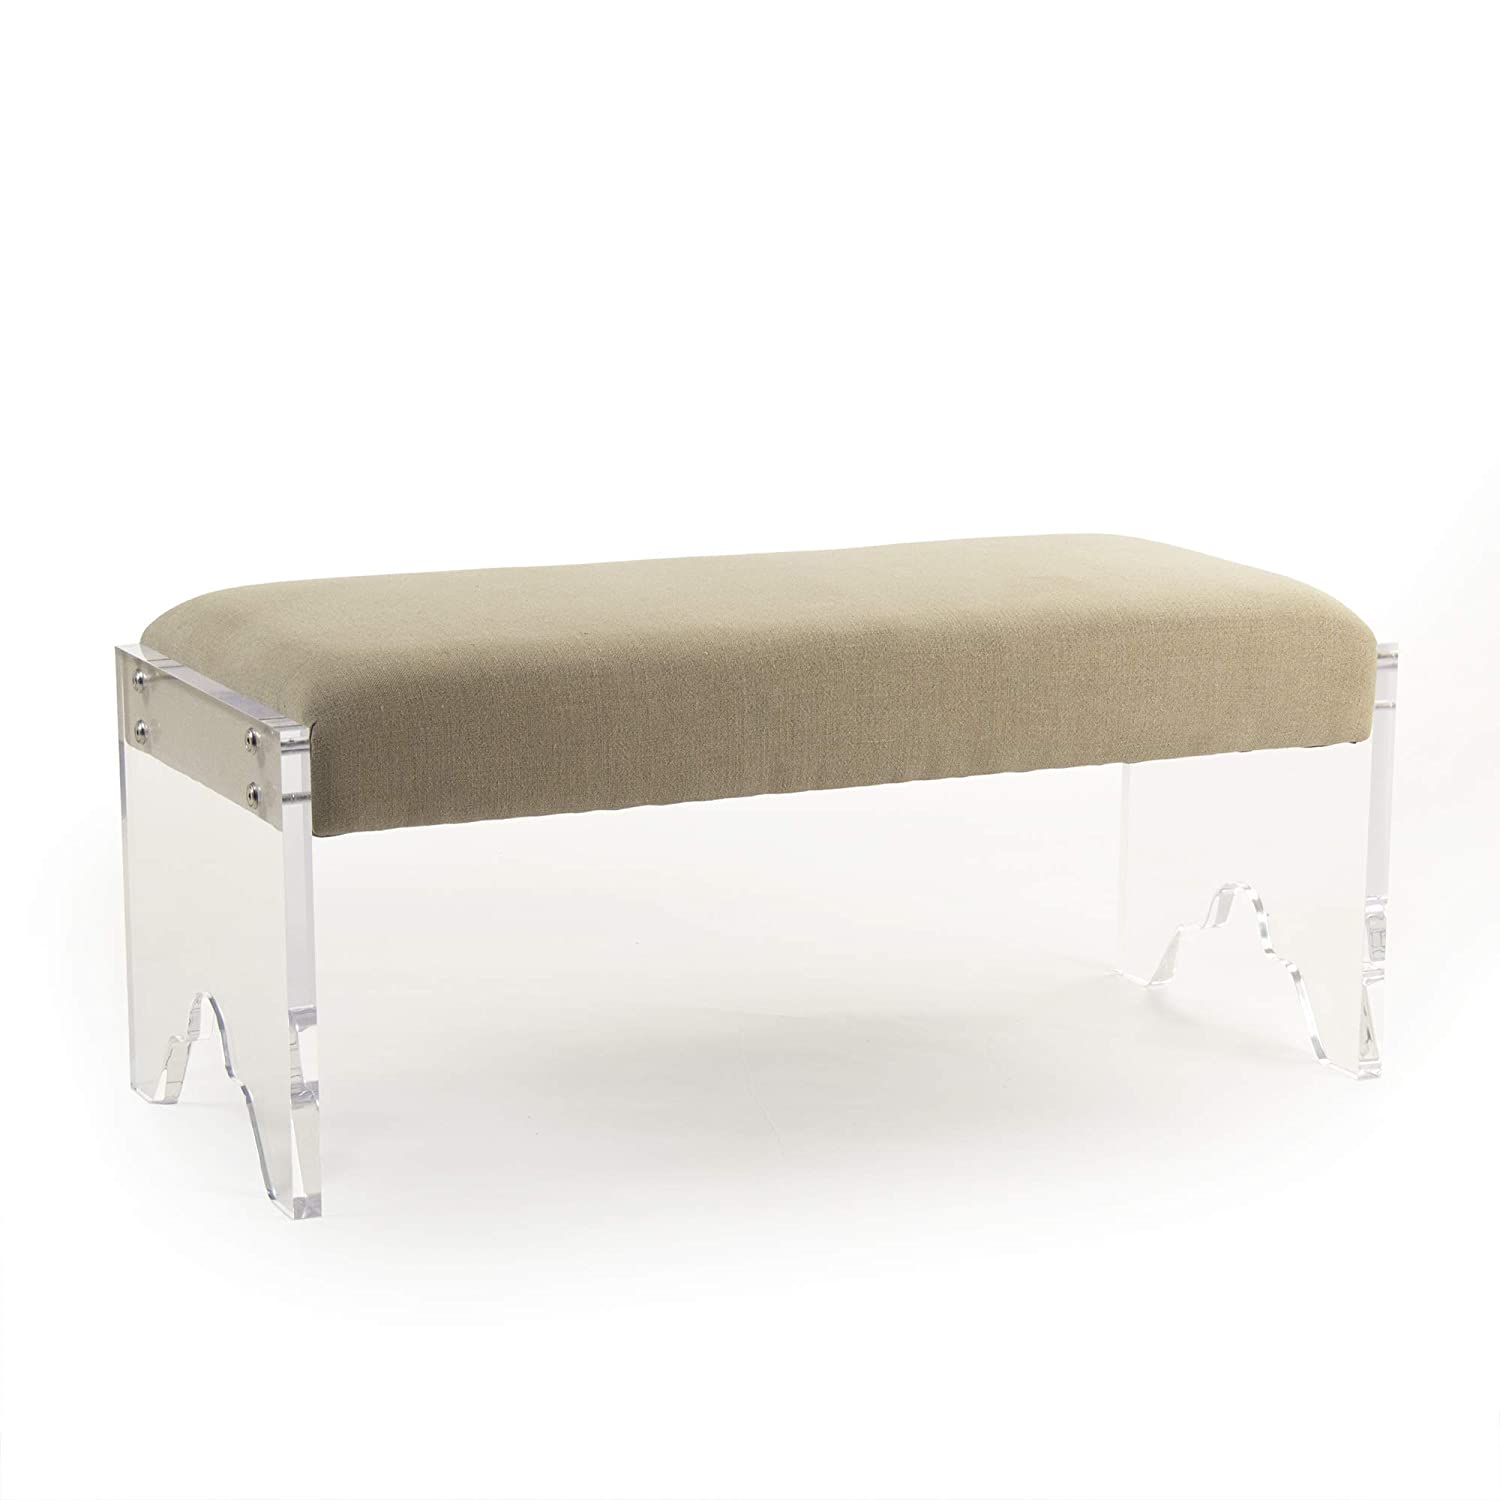 Amazon.com: Zentique ZMA013 Addie Bench, Natural Linen ...